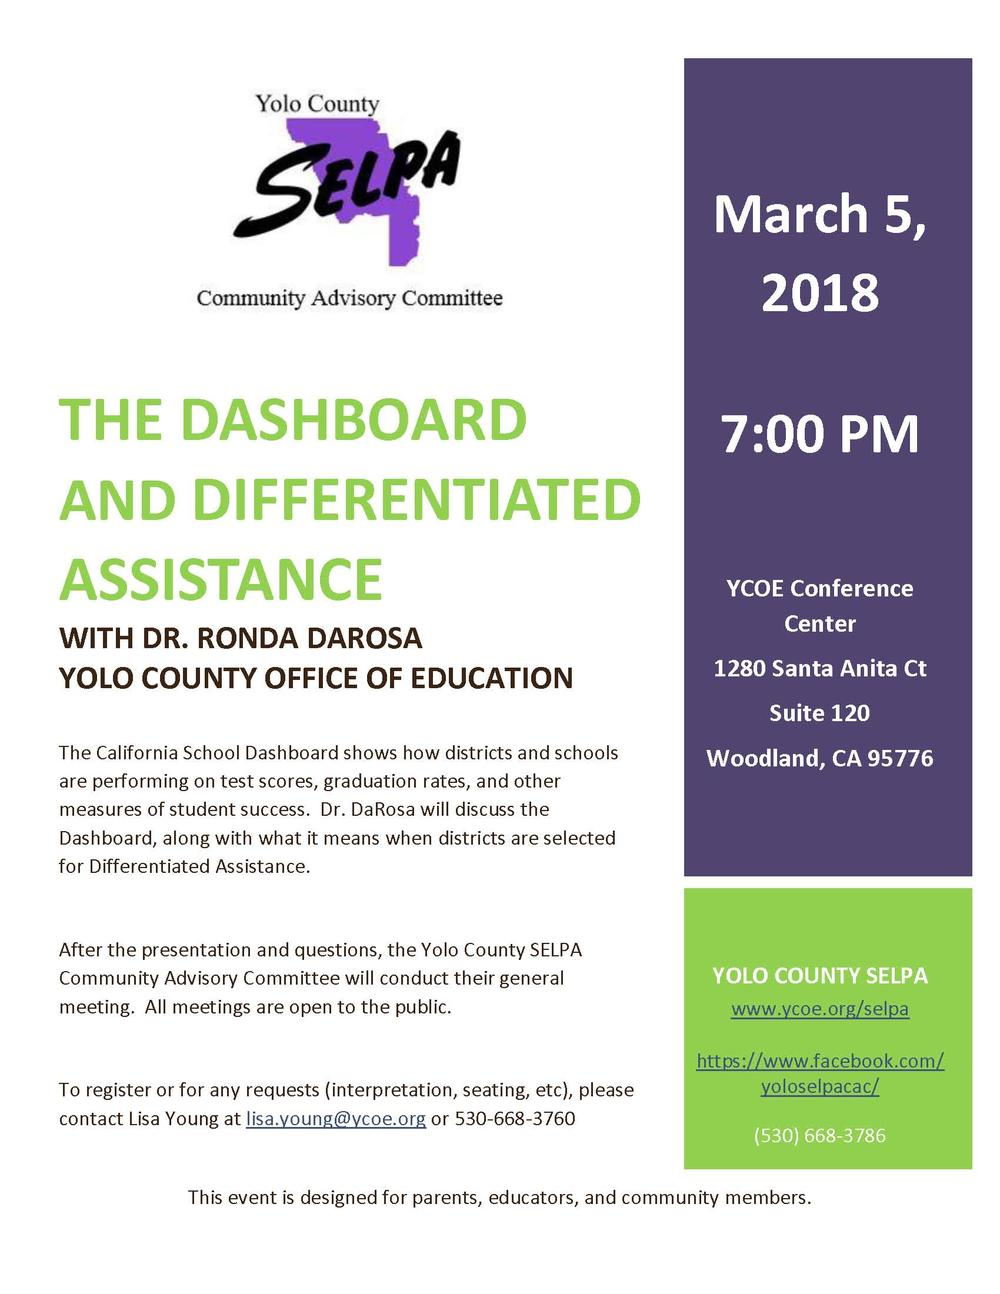 The Dashboard and Differentiated Assistance Flyer